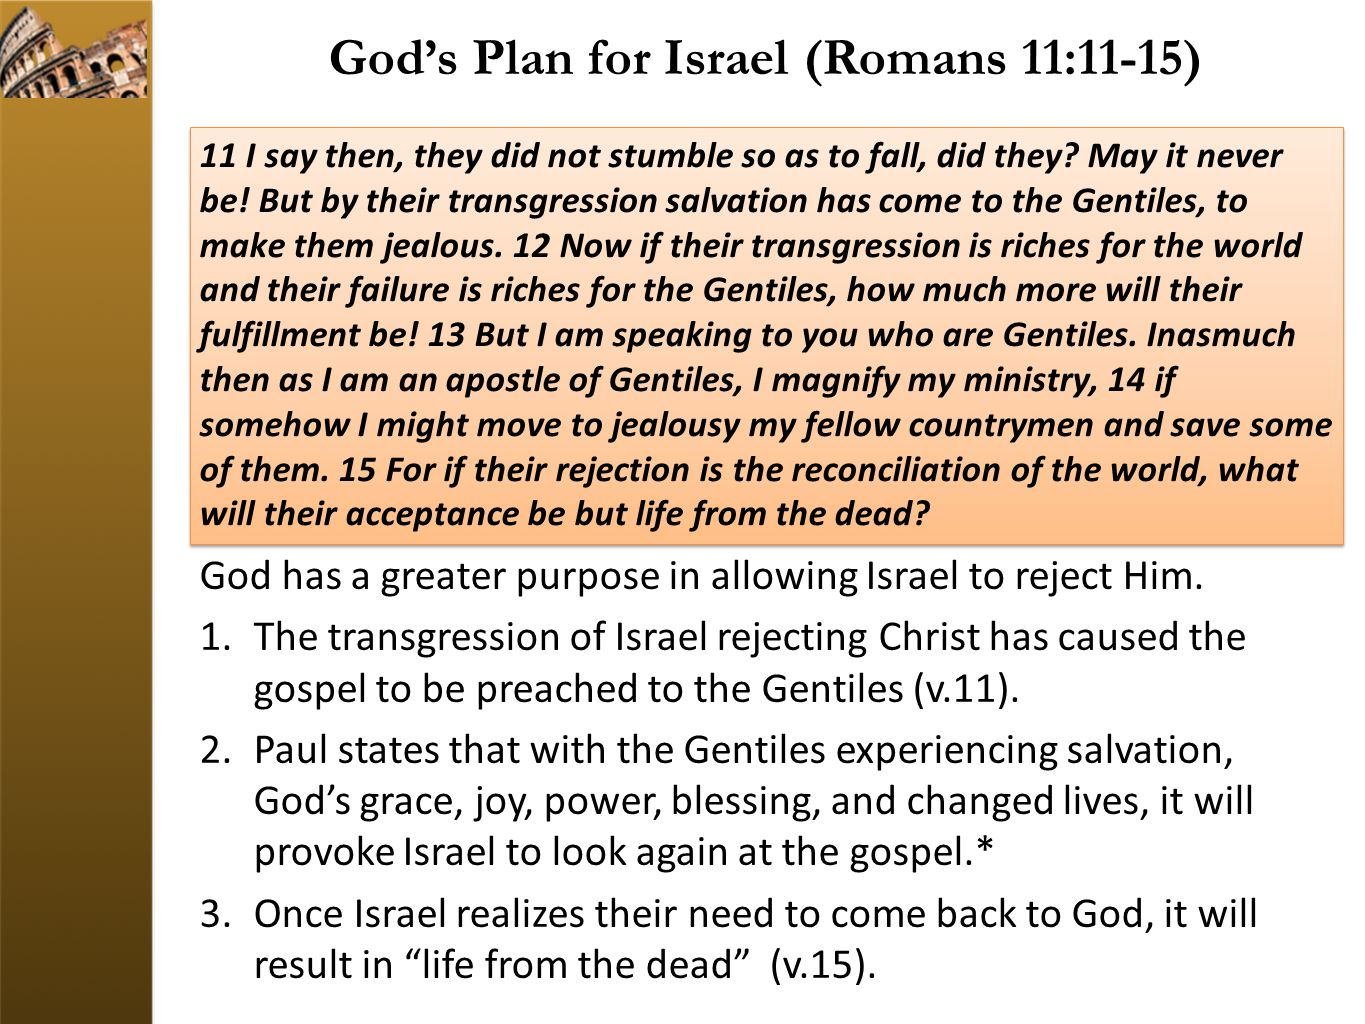 God's Plan for Israel (Romans 11:11-15)